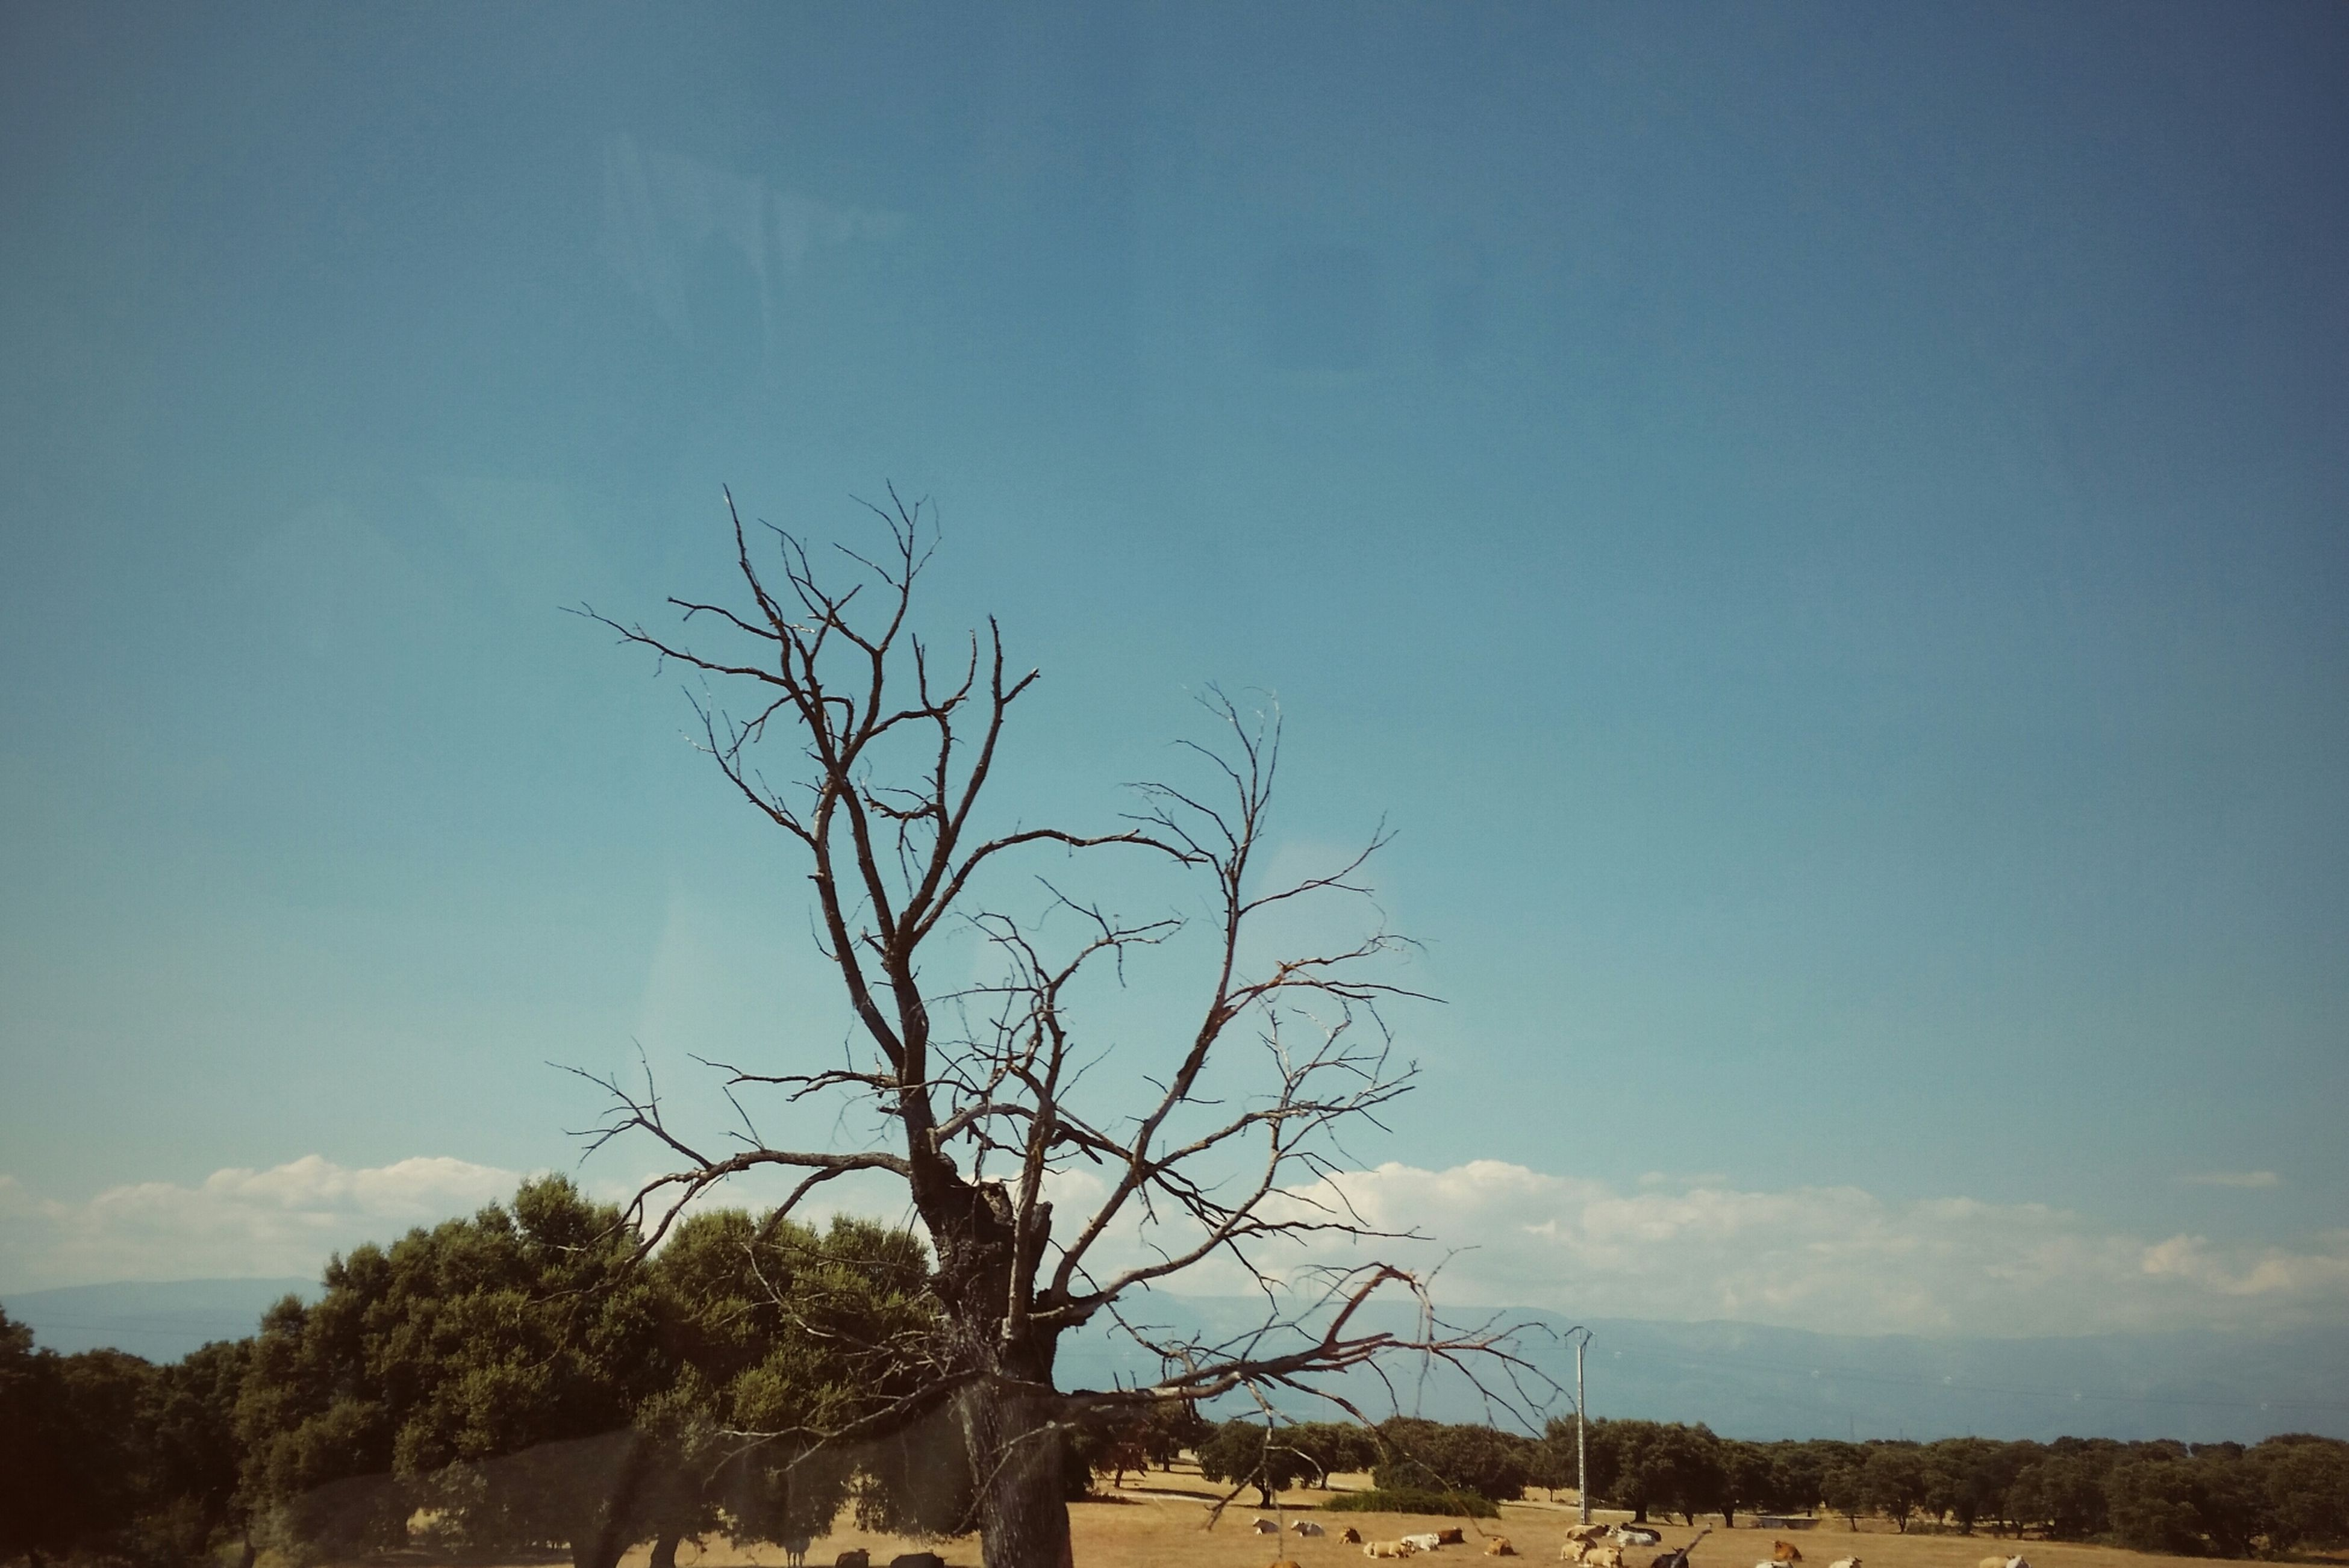 sky, tree, bare tree, tranquility, tranquil scene, nature, blue, landscape, branch, scenics, beauty in nature, low angle view, field, clear sky, non-urban scene, day, no people, cloud, outdoors, remote